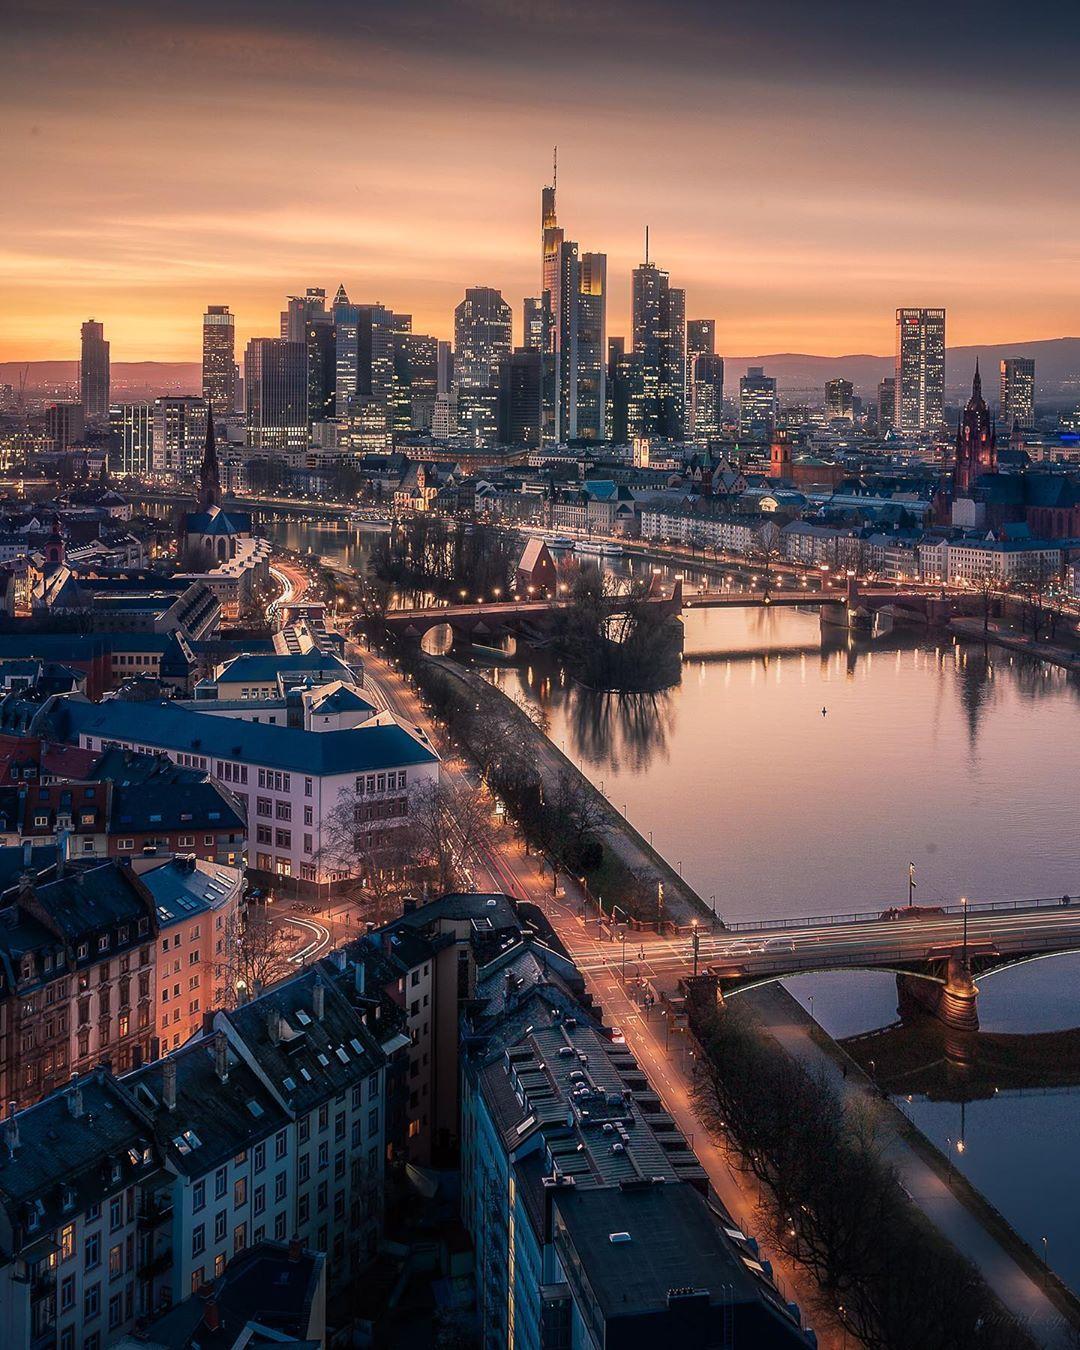 Michael Sidofsky On Instagram From The Towering Skyscrapers To The Historic Old Town Frankfurt S Diverse Architecture E In 2020 Schone Orte Frankfurt Am Main Bilder